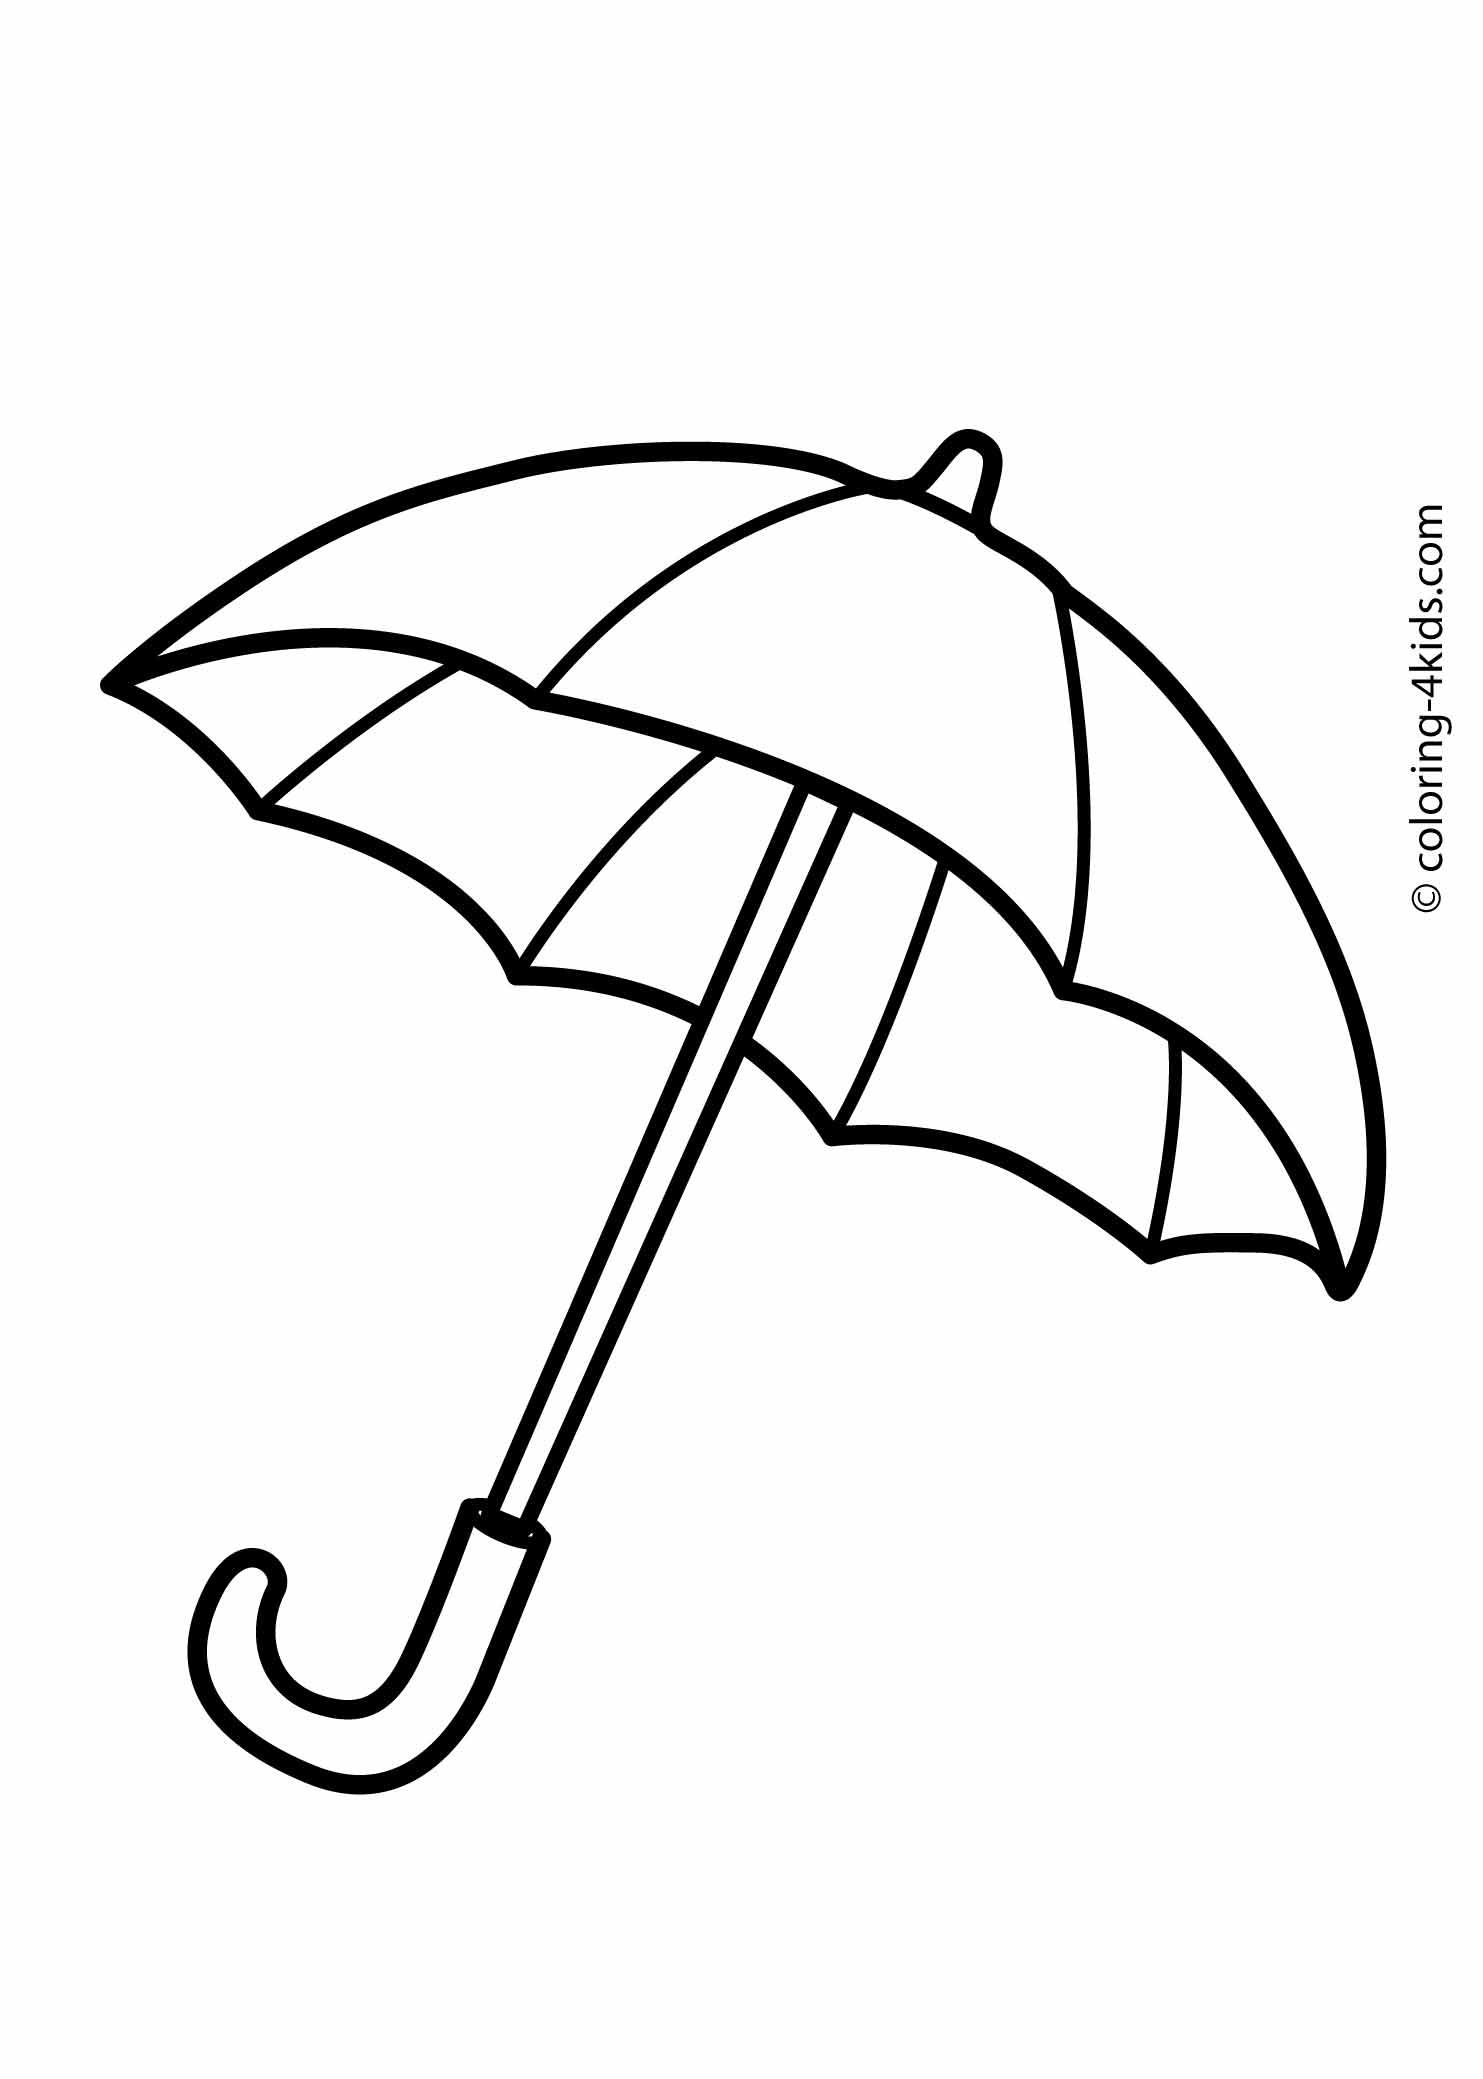 printable umbrella template for preschool - umbrella coloring pages for kids printable drawing